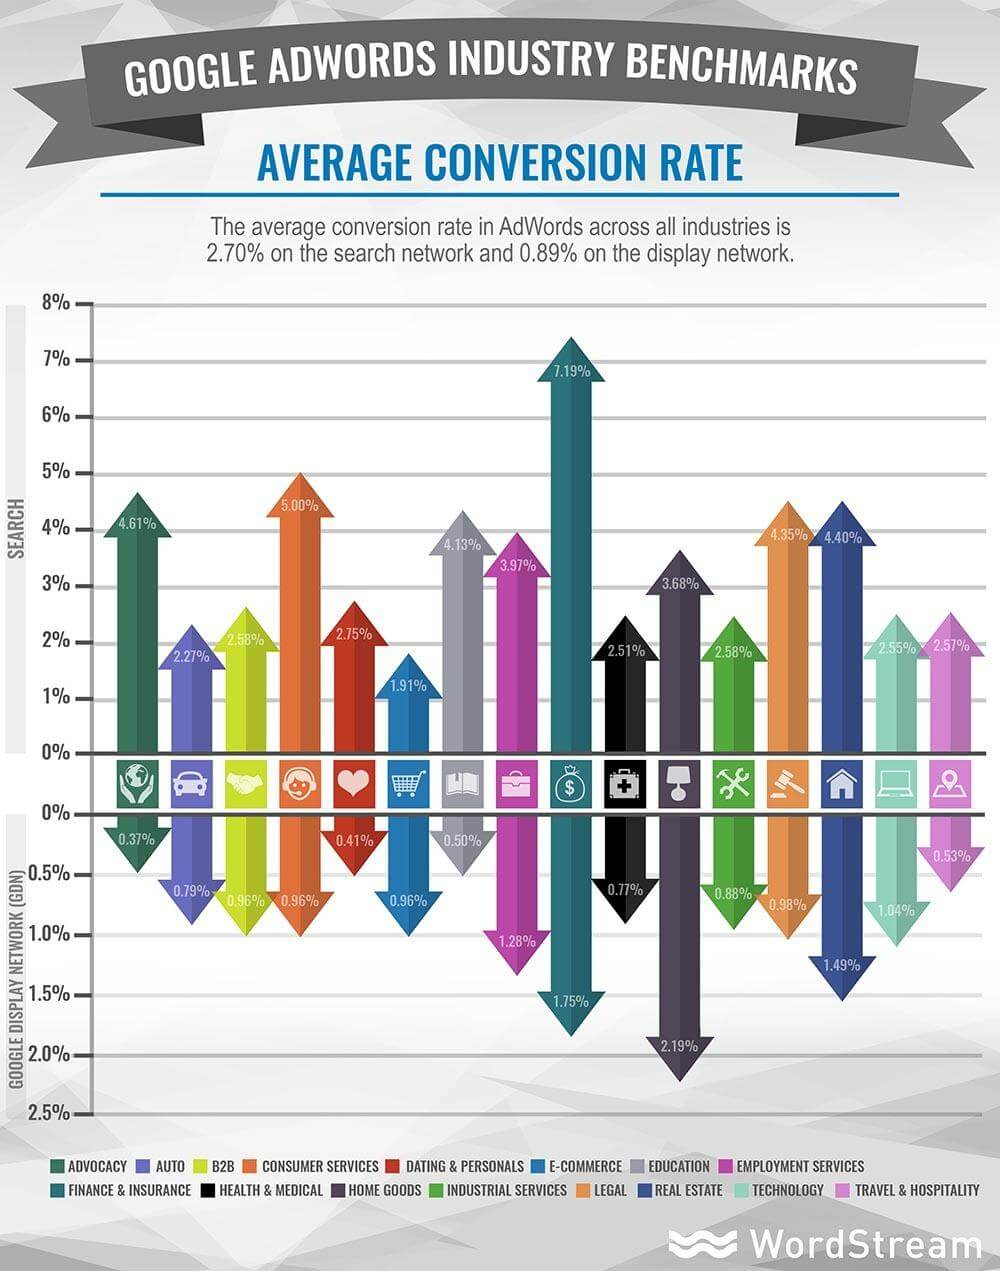 Google Ads industry benchmarks average conversion rate